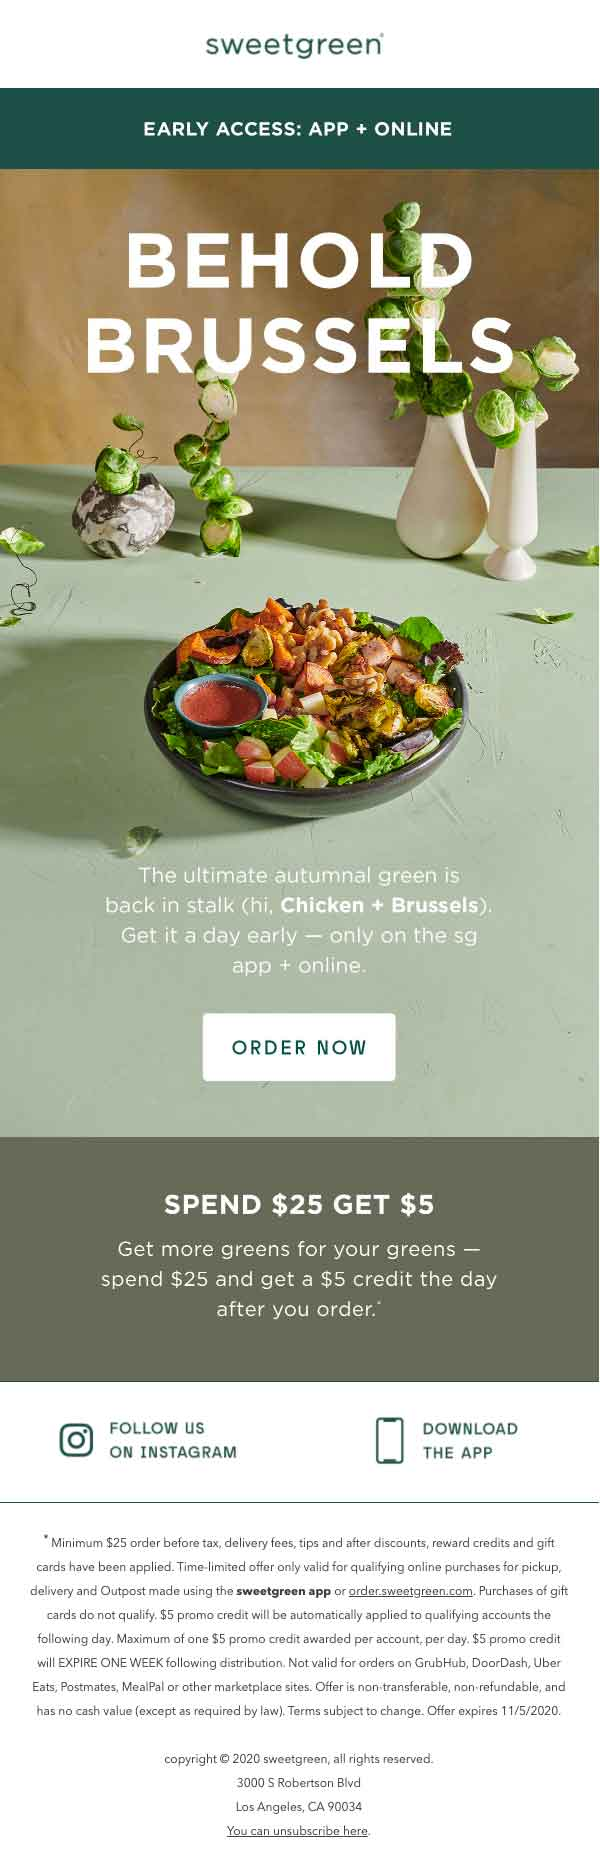 sweetgreen behold brussels email